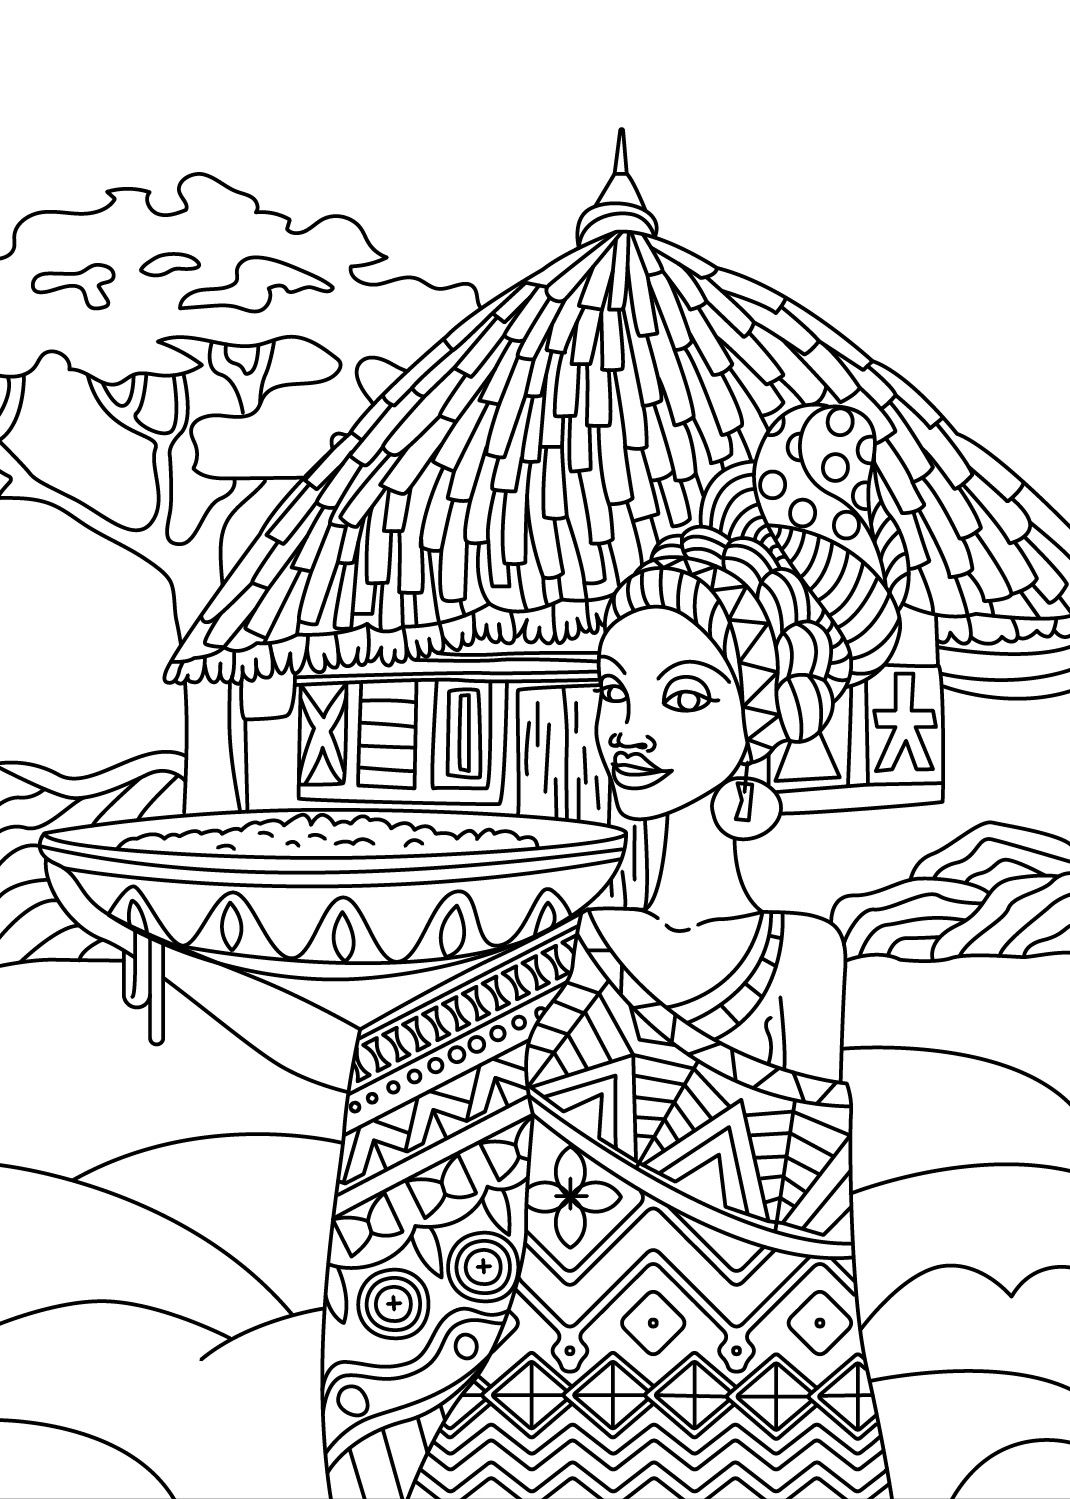 african colorish coloring book app for adults mandala relax by